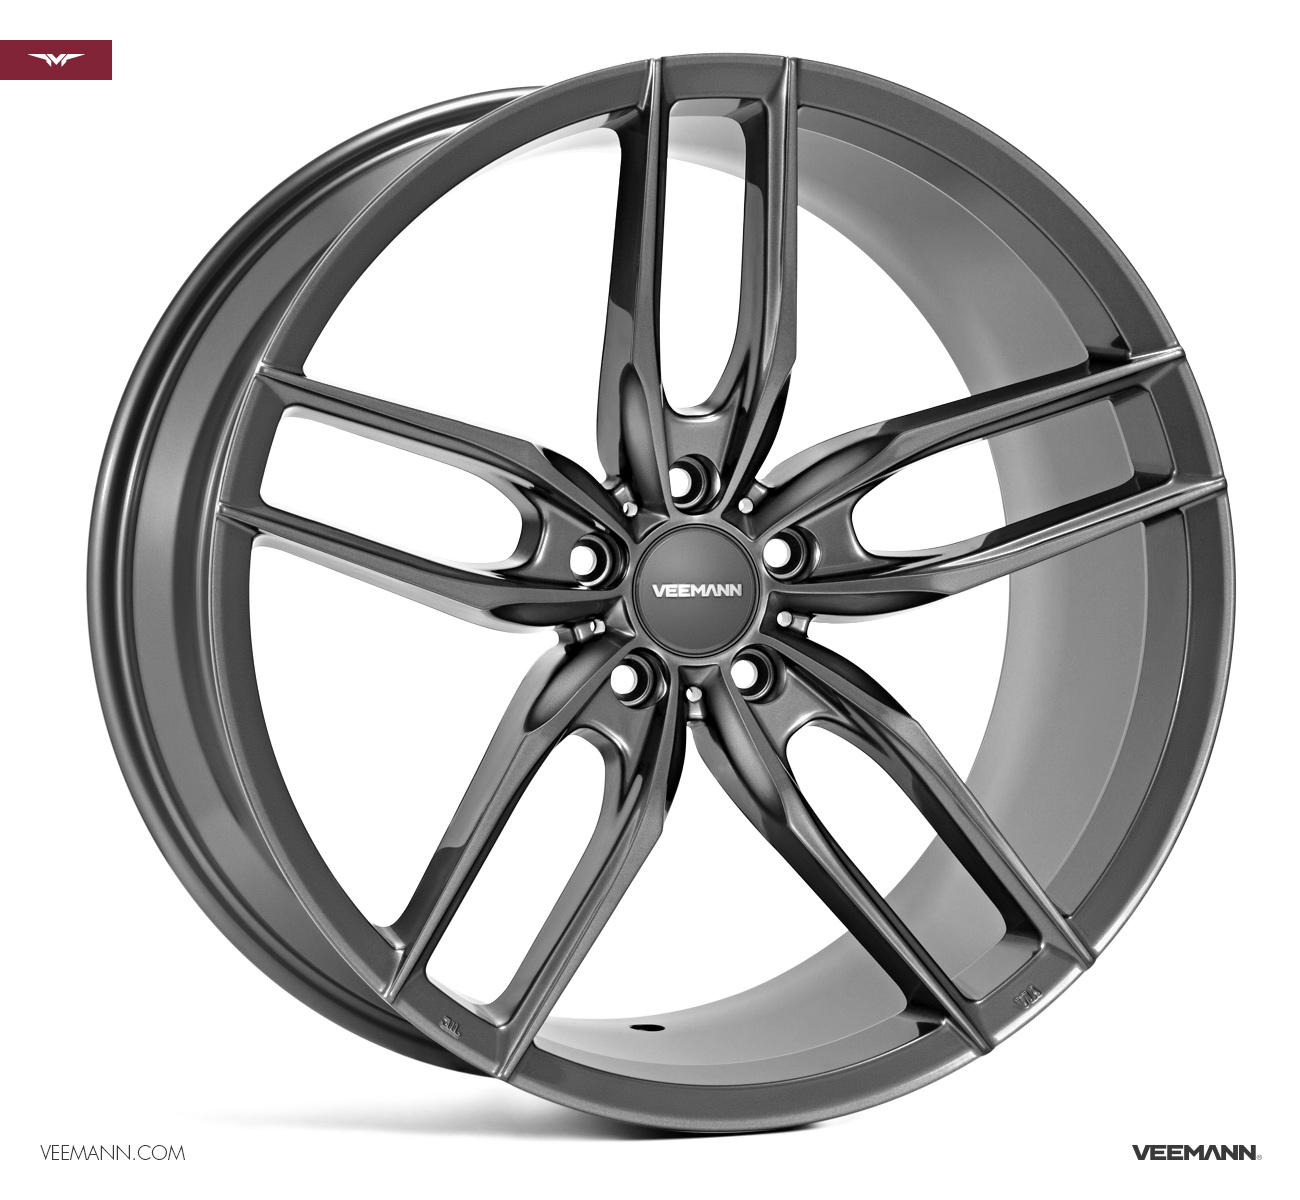 "NEW 22"" VEEMANN V-FS28 ALLOY WHEELS IN GLOSS GRAPHITE WITH DEEPER CONCAVE 10.5"" REARS"